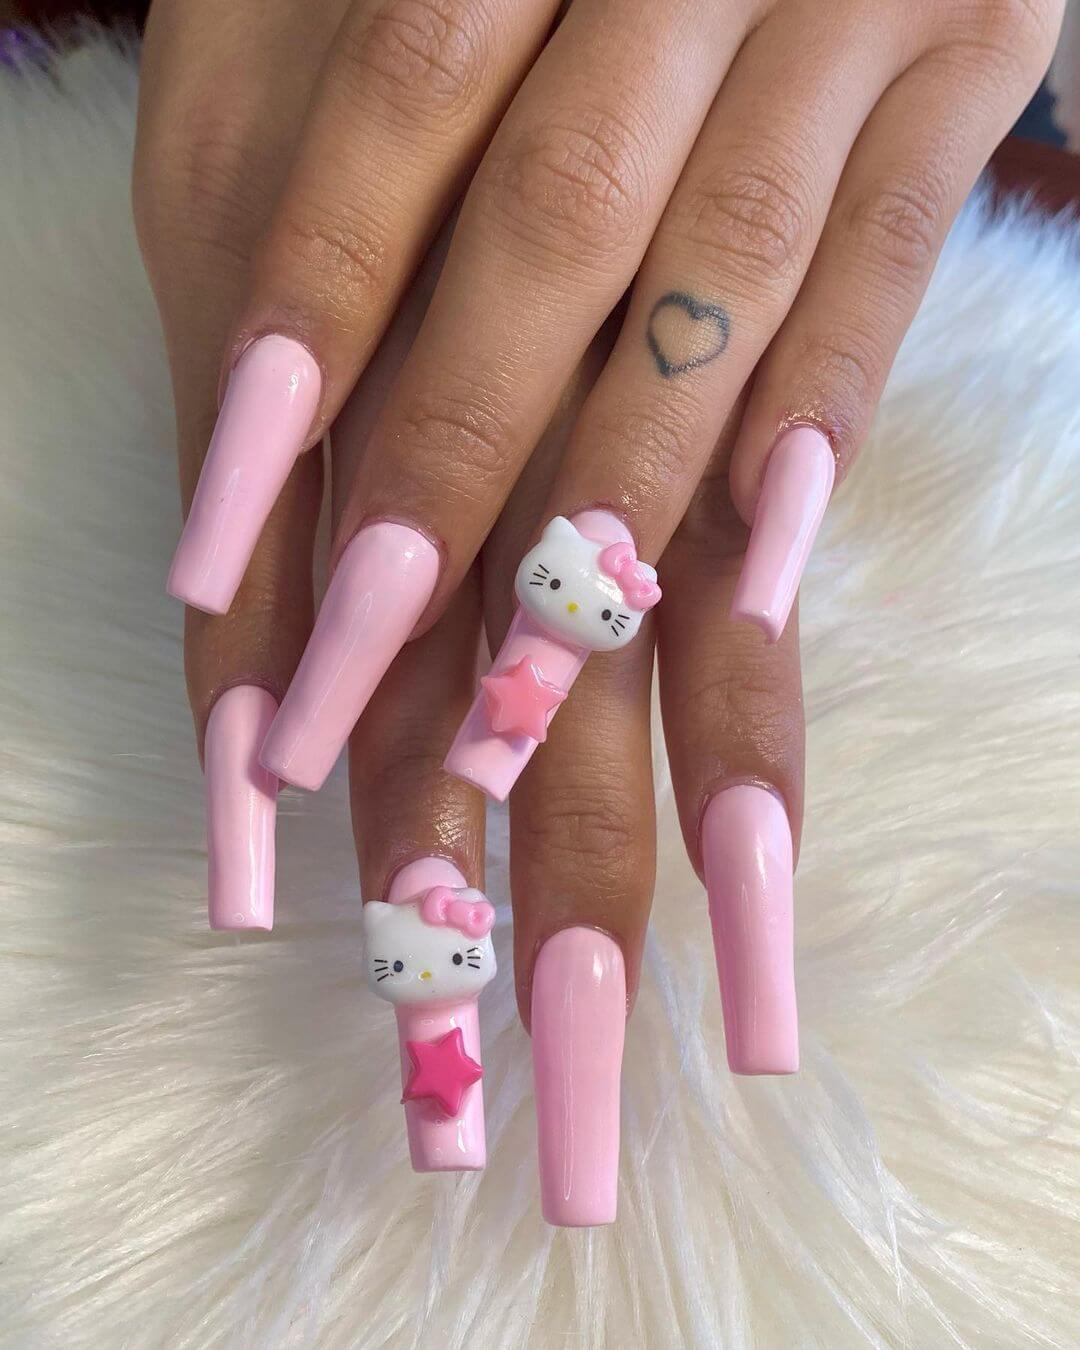 Another simple Hello Kitty design in pink